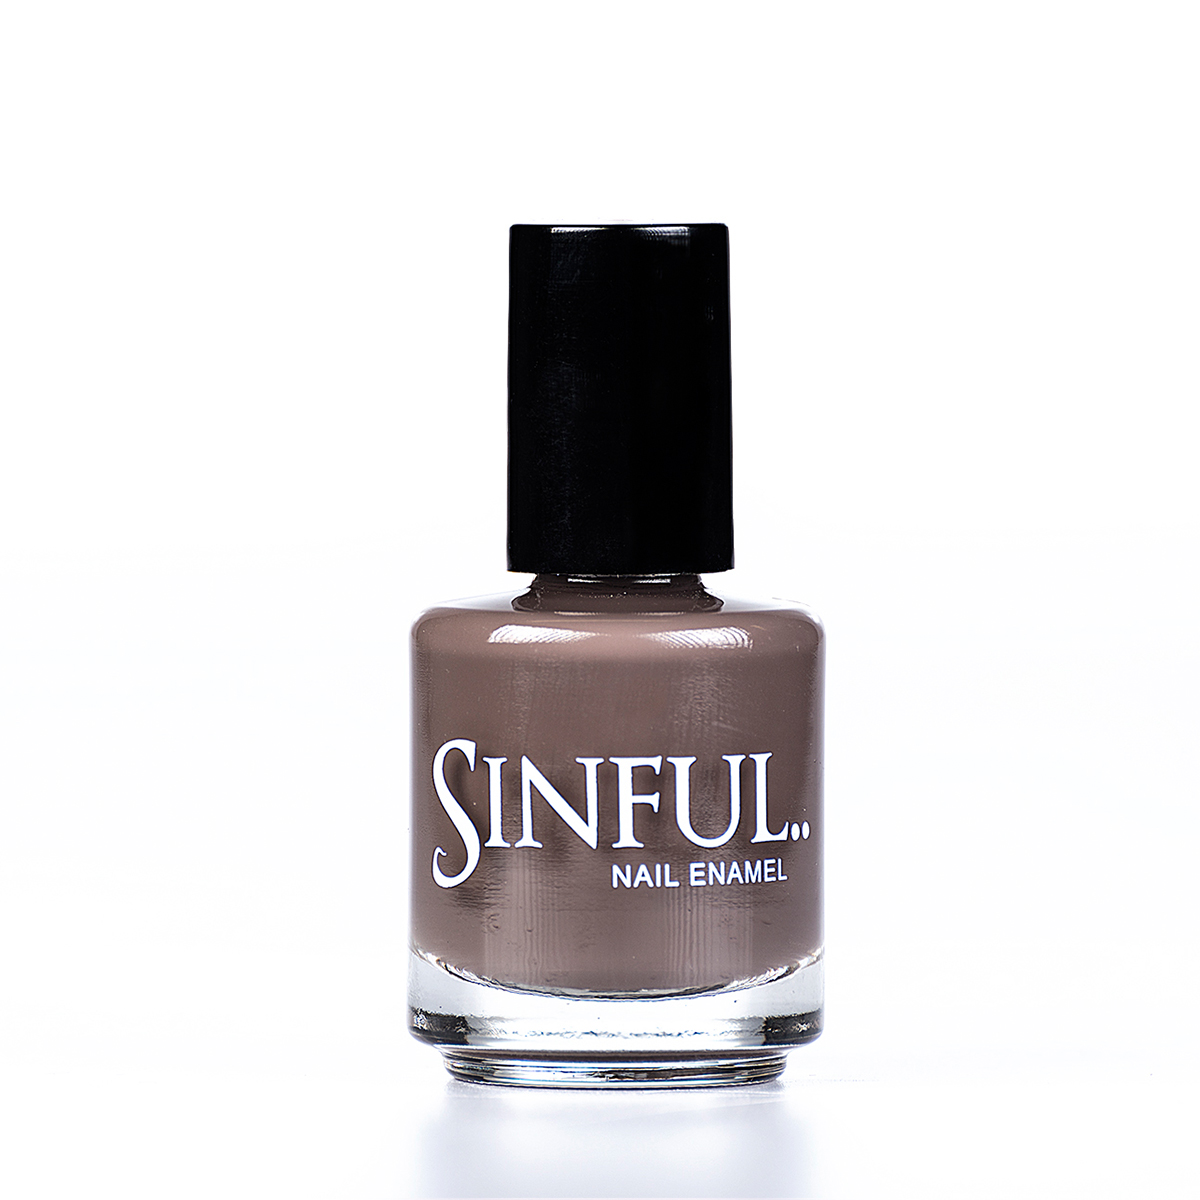 A warm, earthy tone, this colour is gorgeous with all skin tones. Sinful always recommends applying two coats of polish to give a solid colour, then applying top coat to extend the wear-time of the polish.